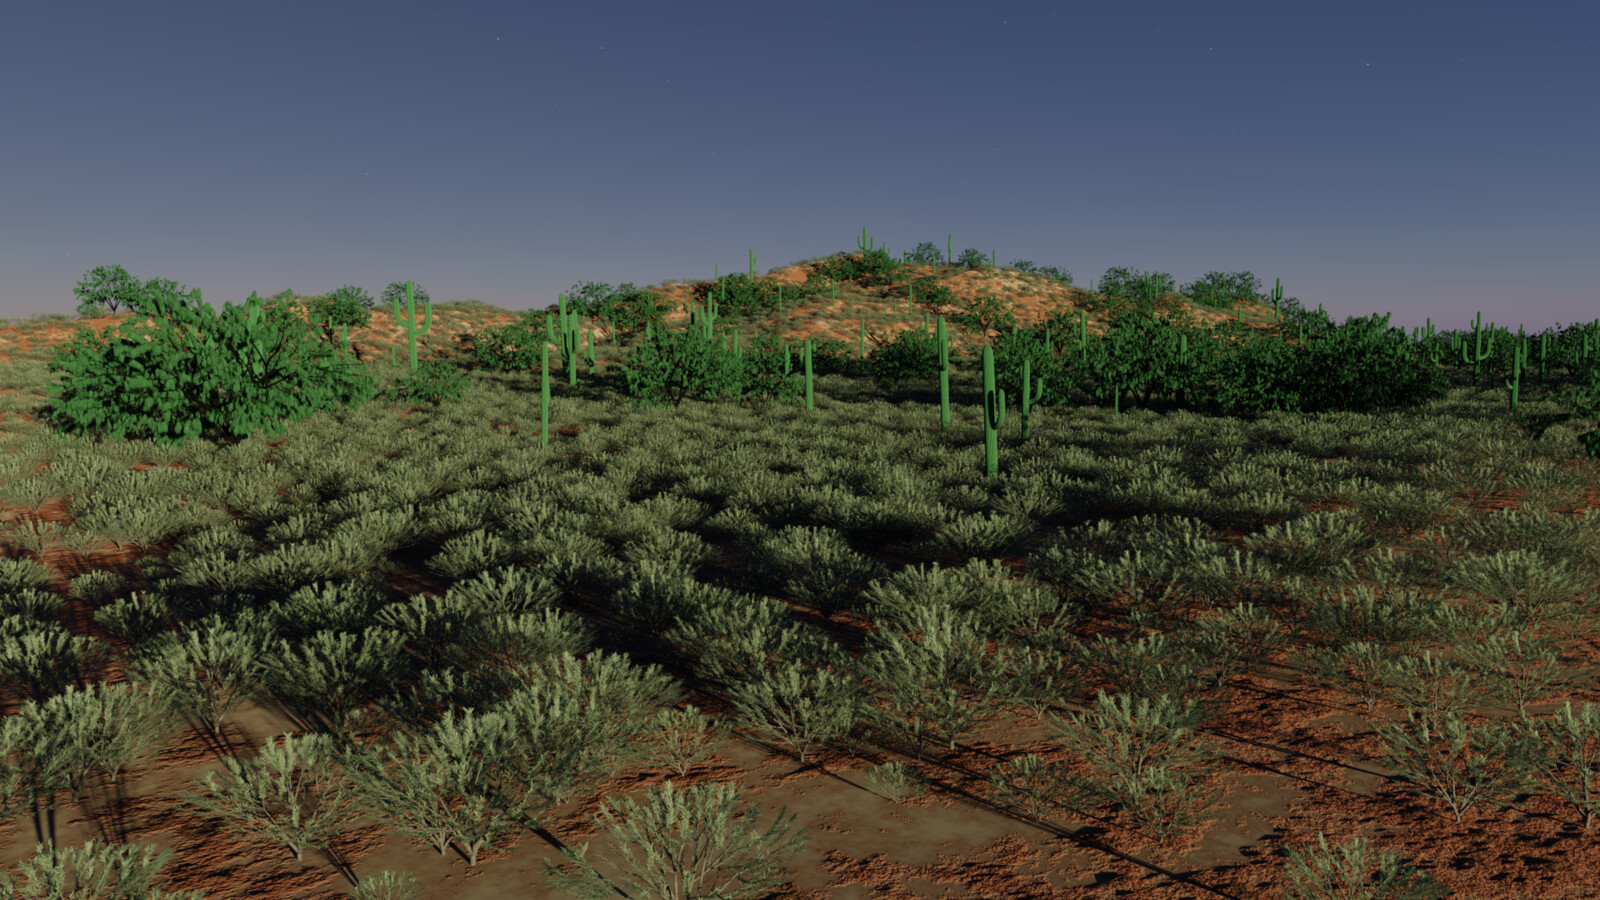 Test Scene in daylight to check scattering